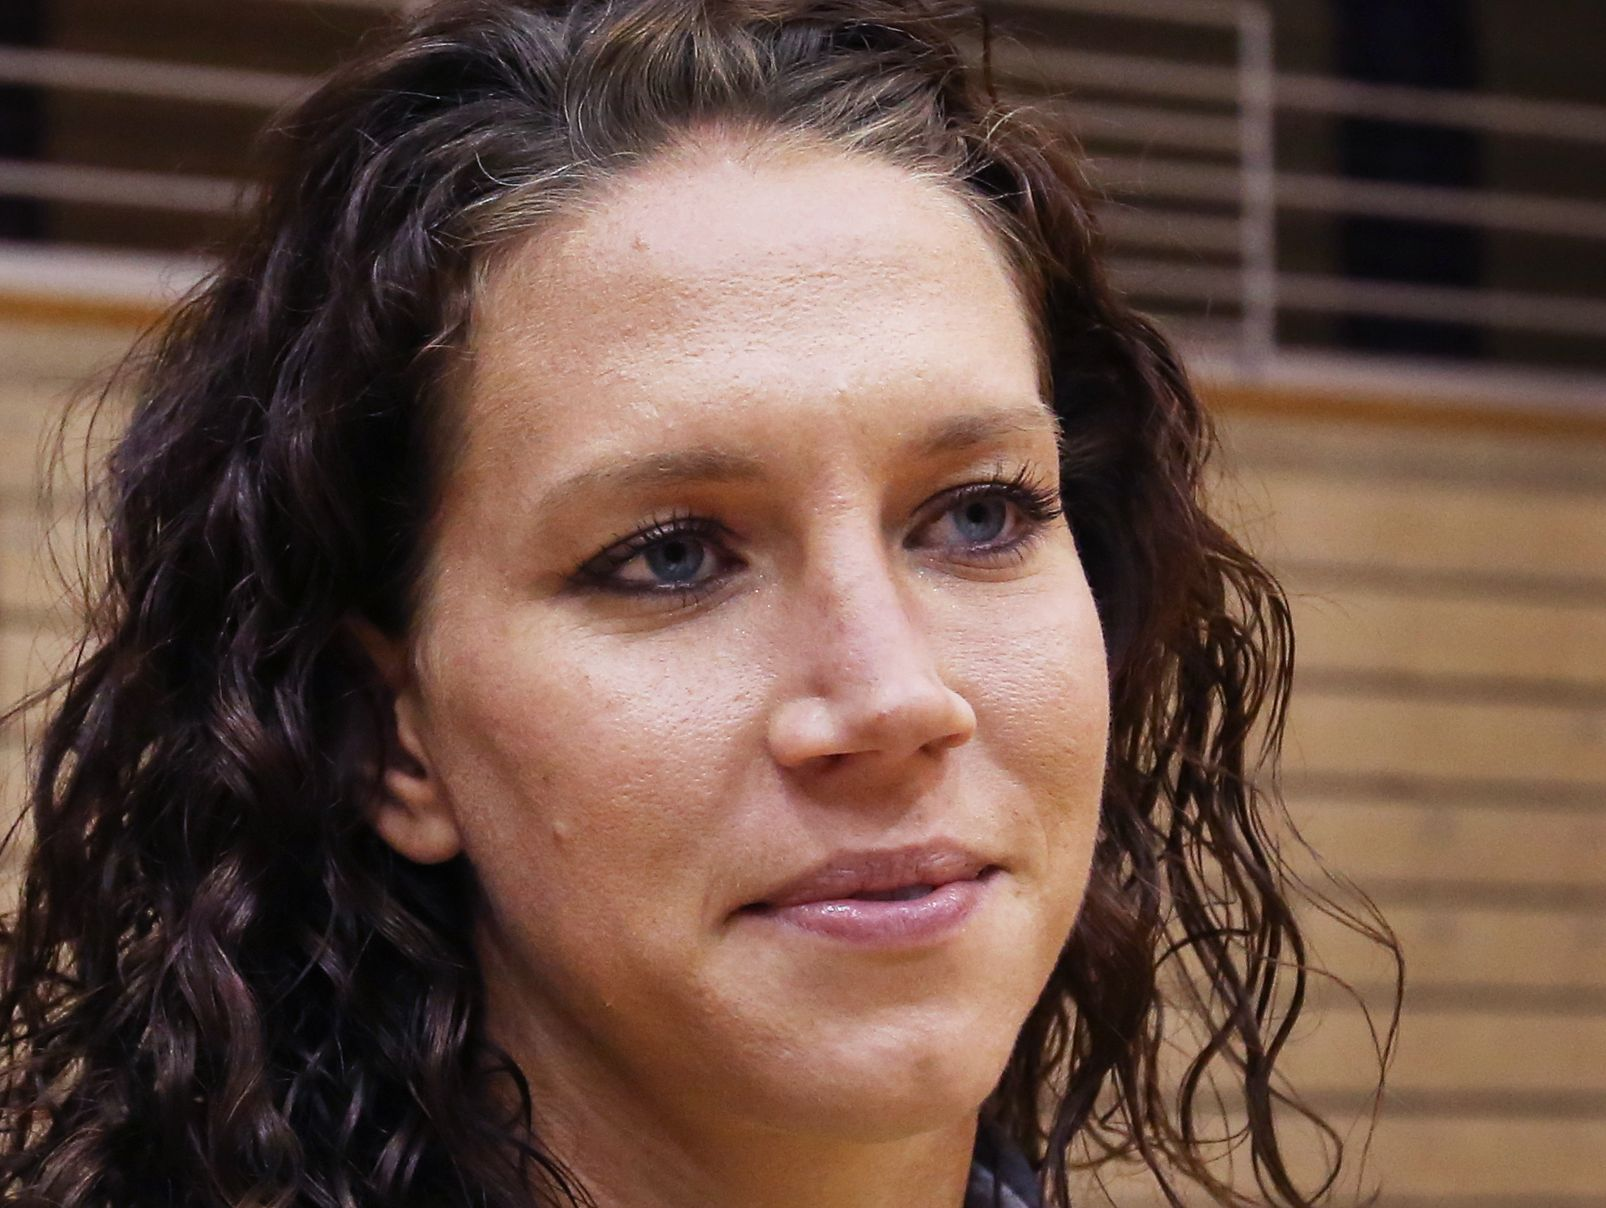 Two-time Olympic gold medalist (2008 and 2012) Lauren Holiday (formerly Cheney), a 2006 graduate of Ben Davis High School, returned to her alma mater for a youth clinic on Wednesday, May 20 2015. Holiday, who now lives in New Orleans, is a midfielder on the U.S. Women's National Soccer Team and is preparing for the World Cup. Holiday spoke to student athletes and helped out Ben Davis strength coach Kevin Vanderbush.